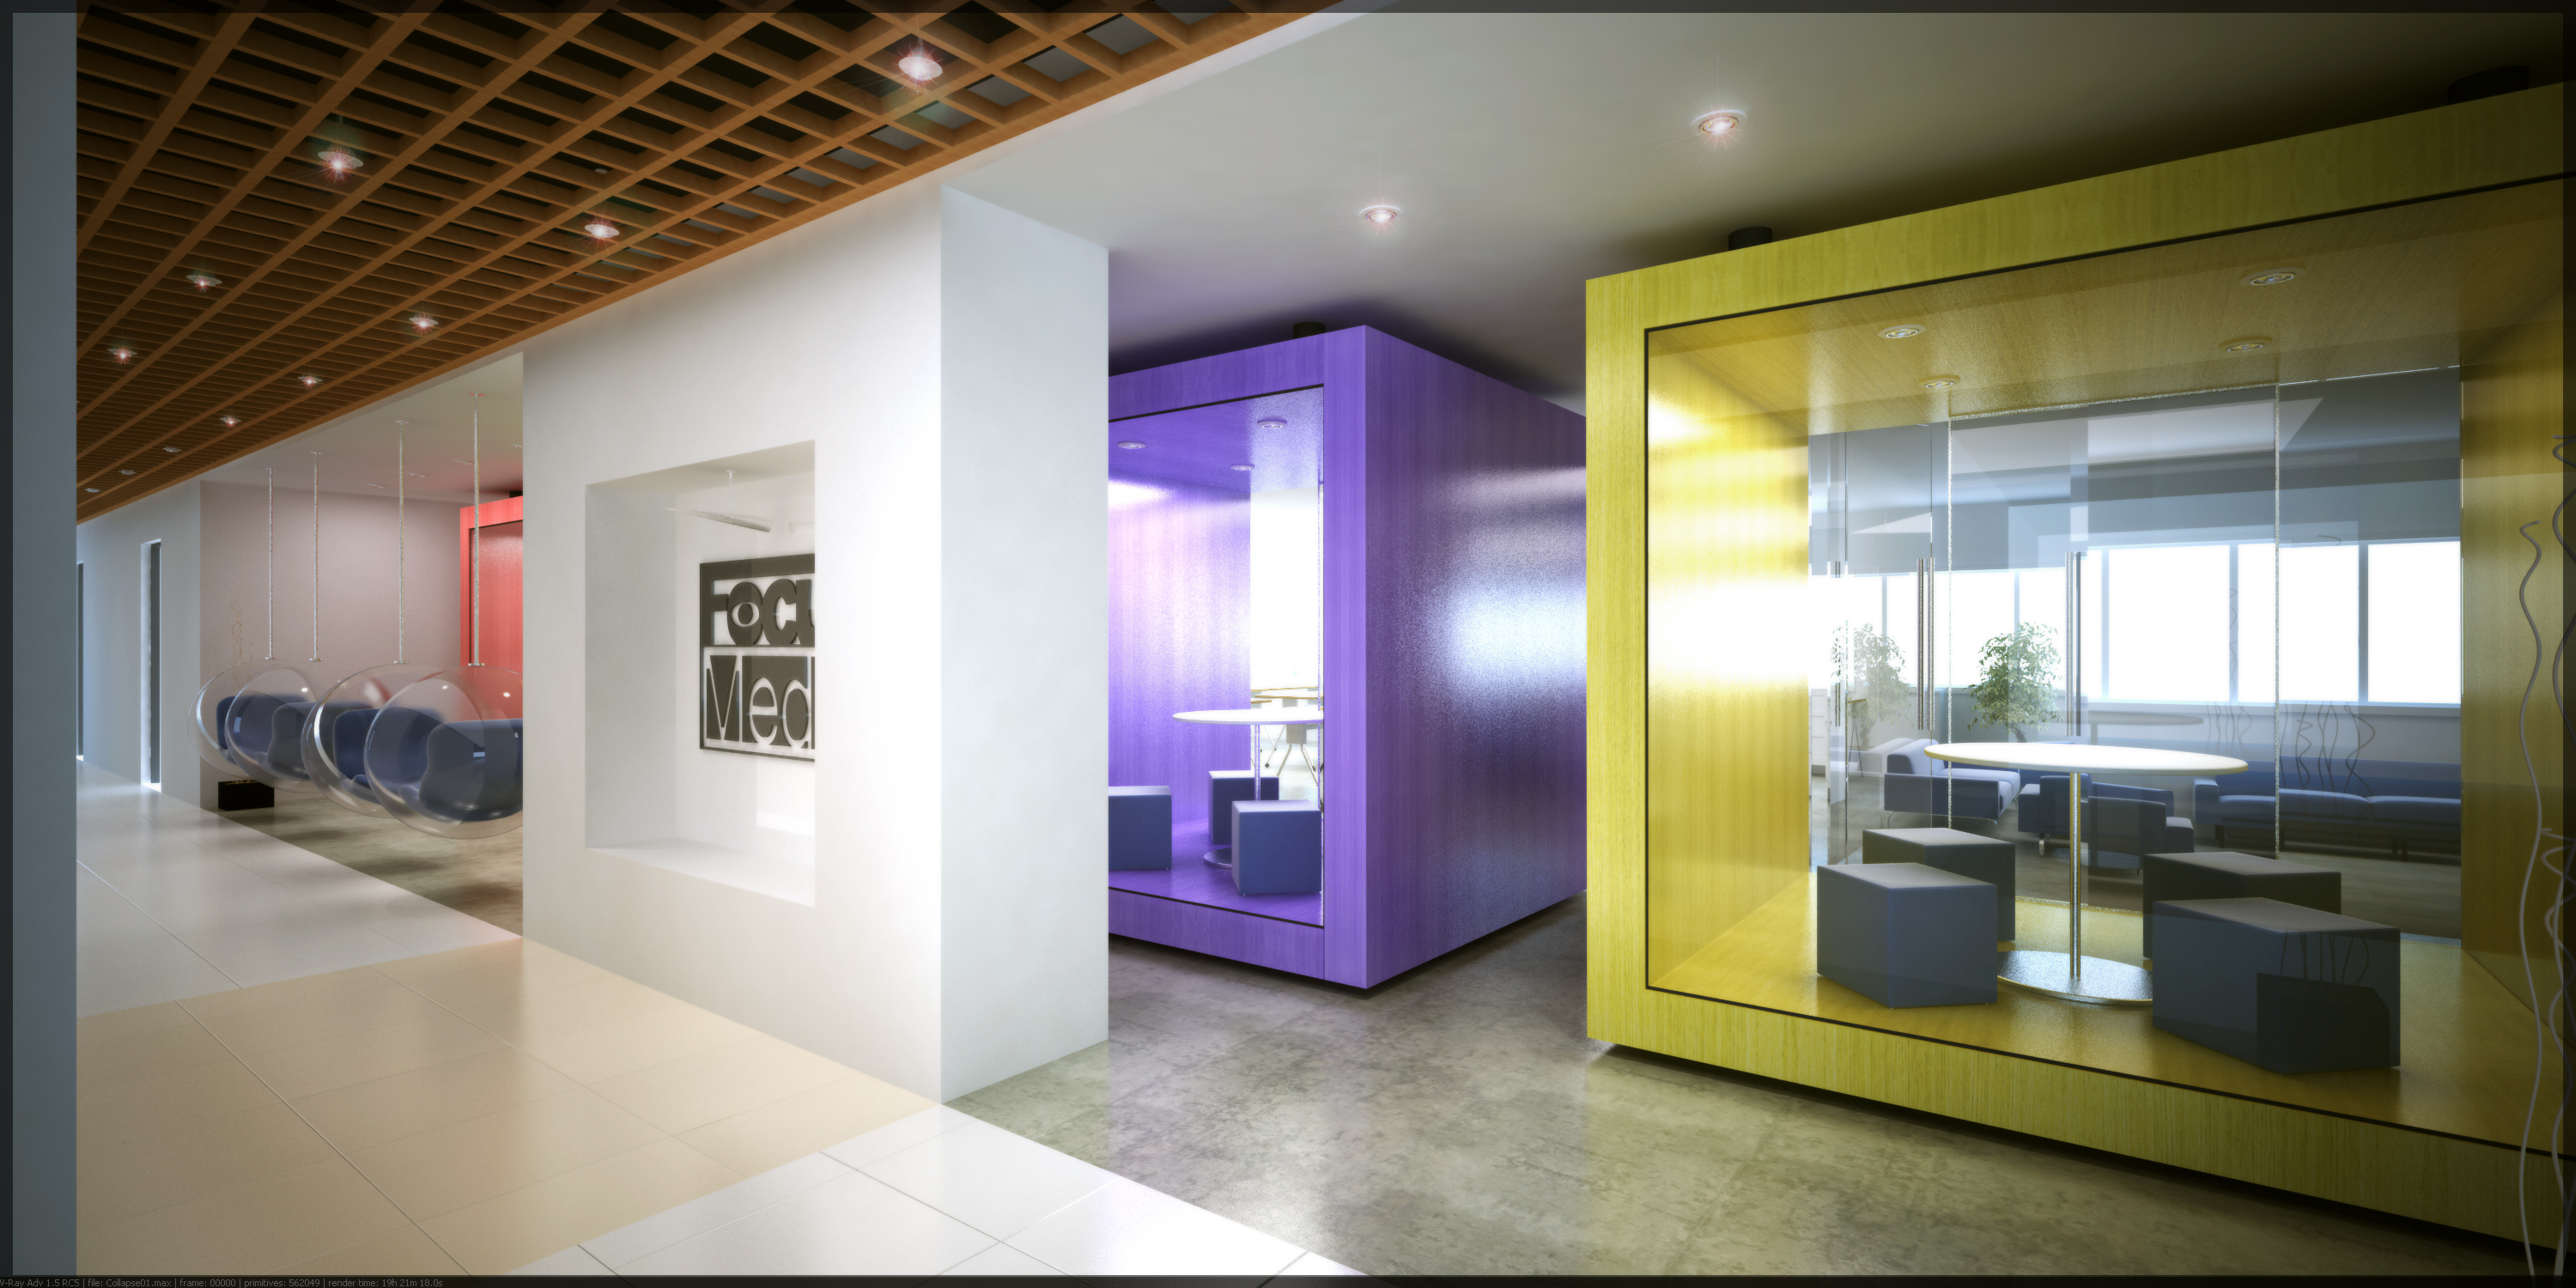 China corporate interior projects 2007 by michael coloso for It company interior